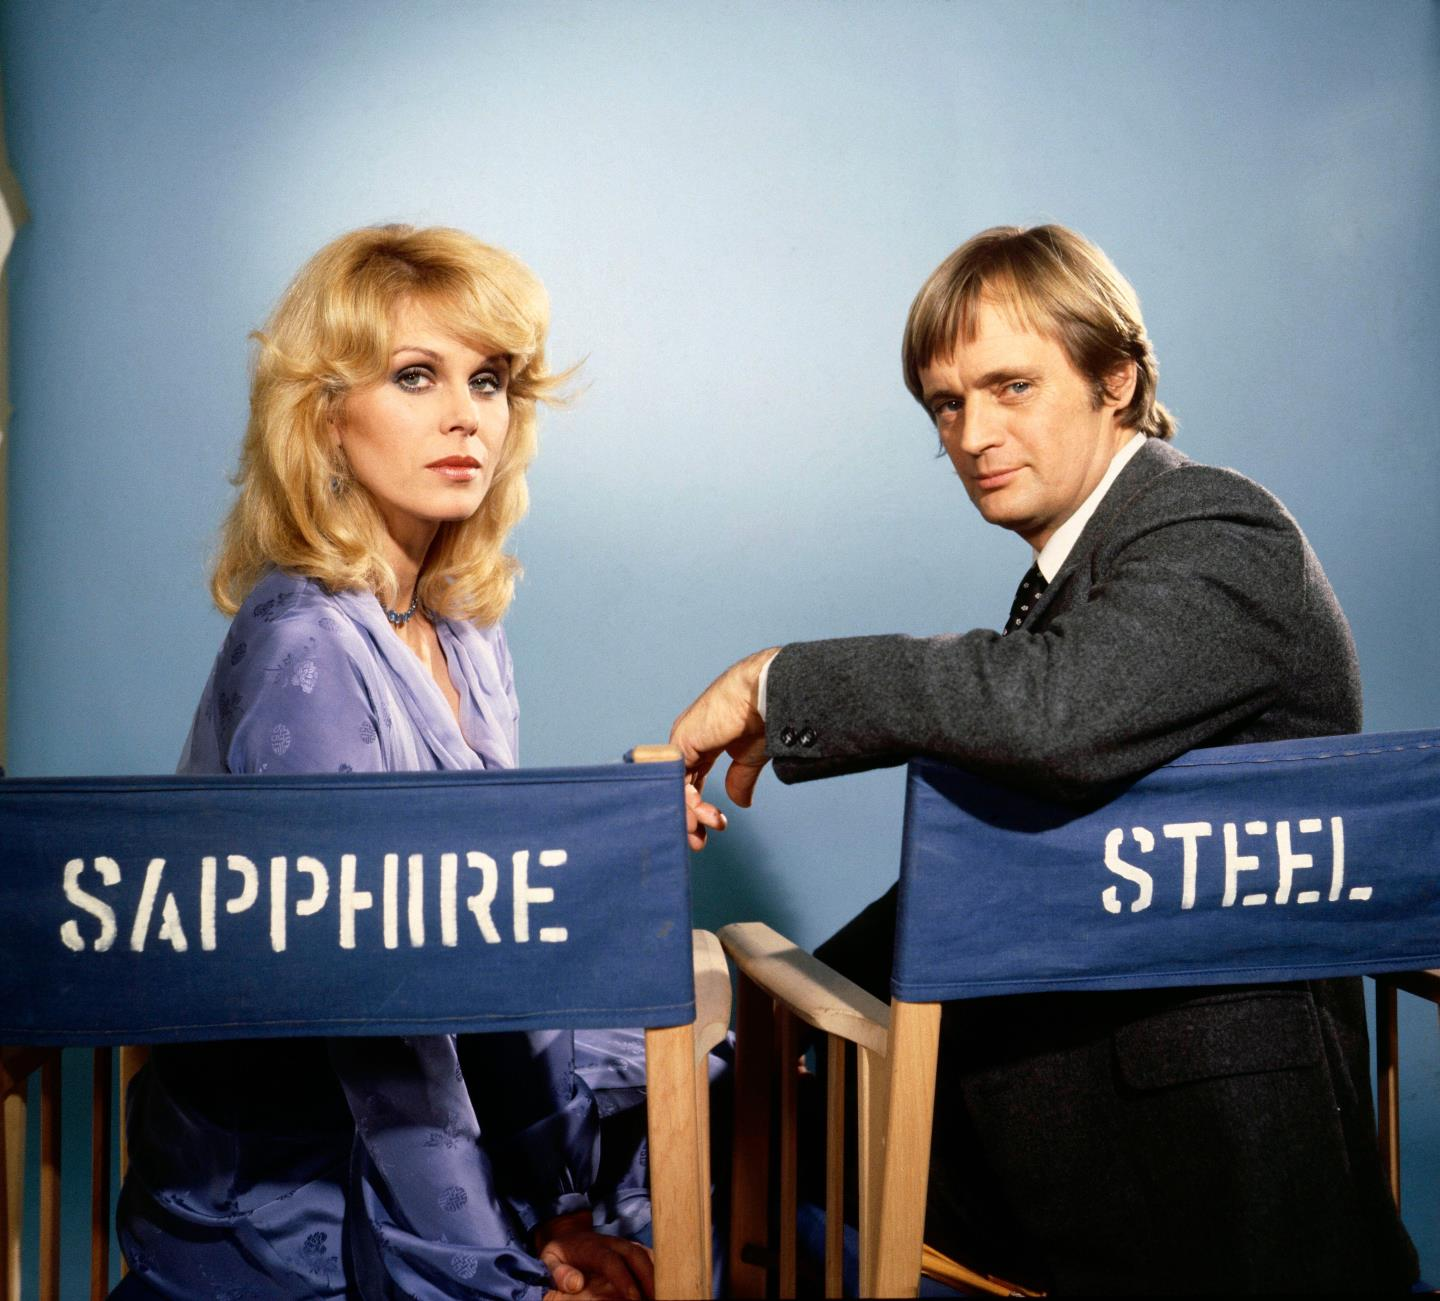 Joanna Lumley as Sapphire and David McCallum as Steel in the popular ITV series.